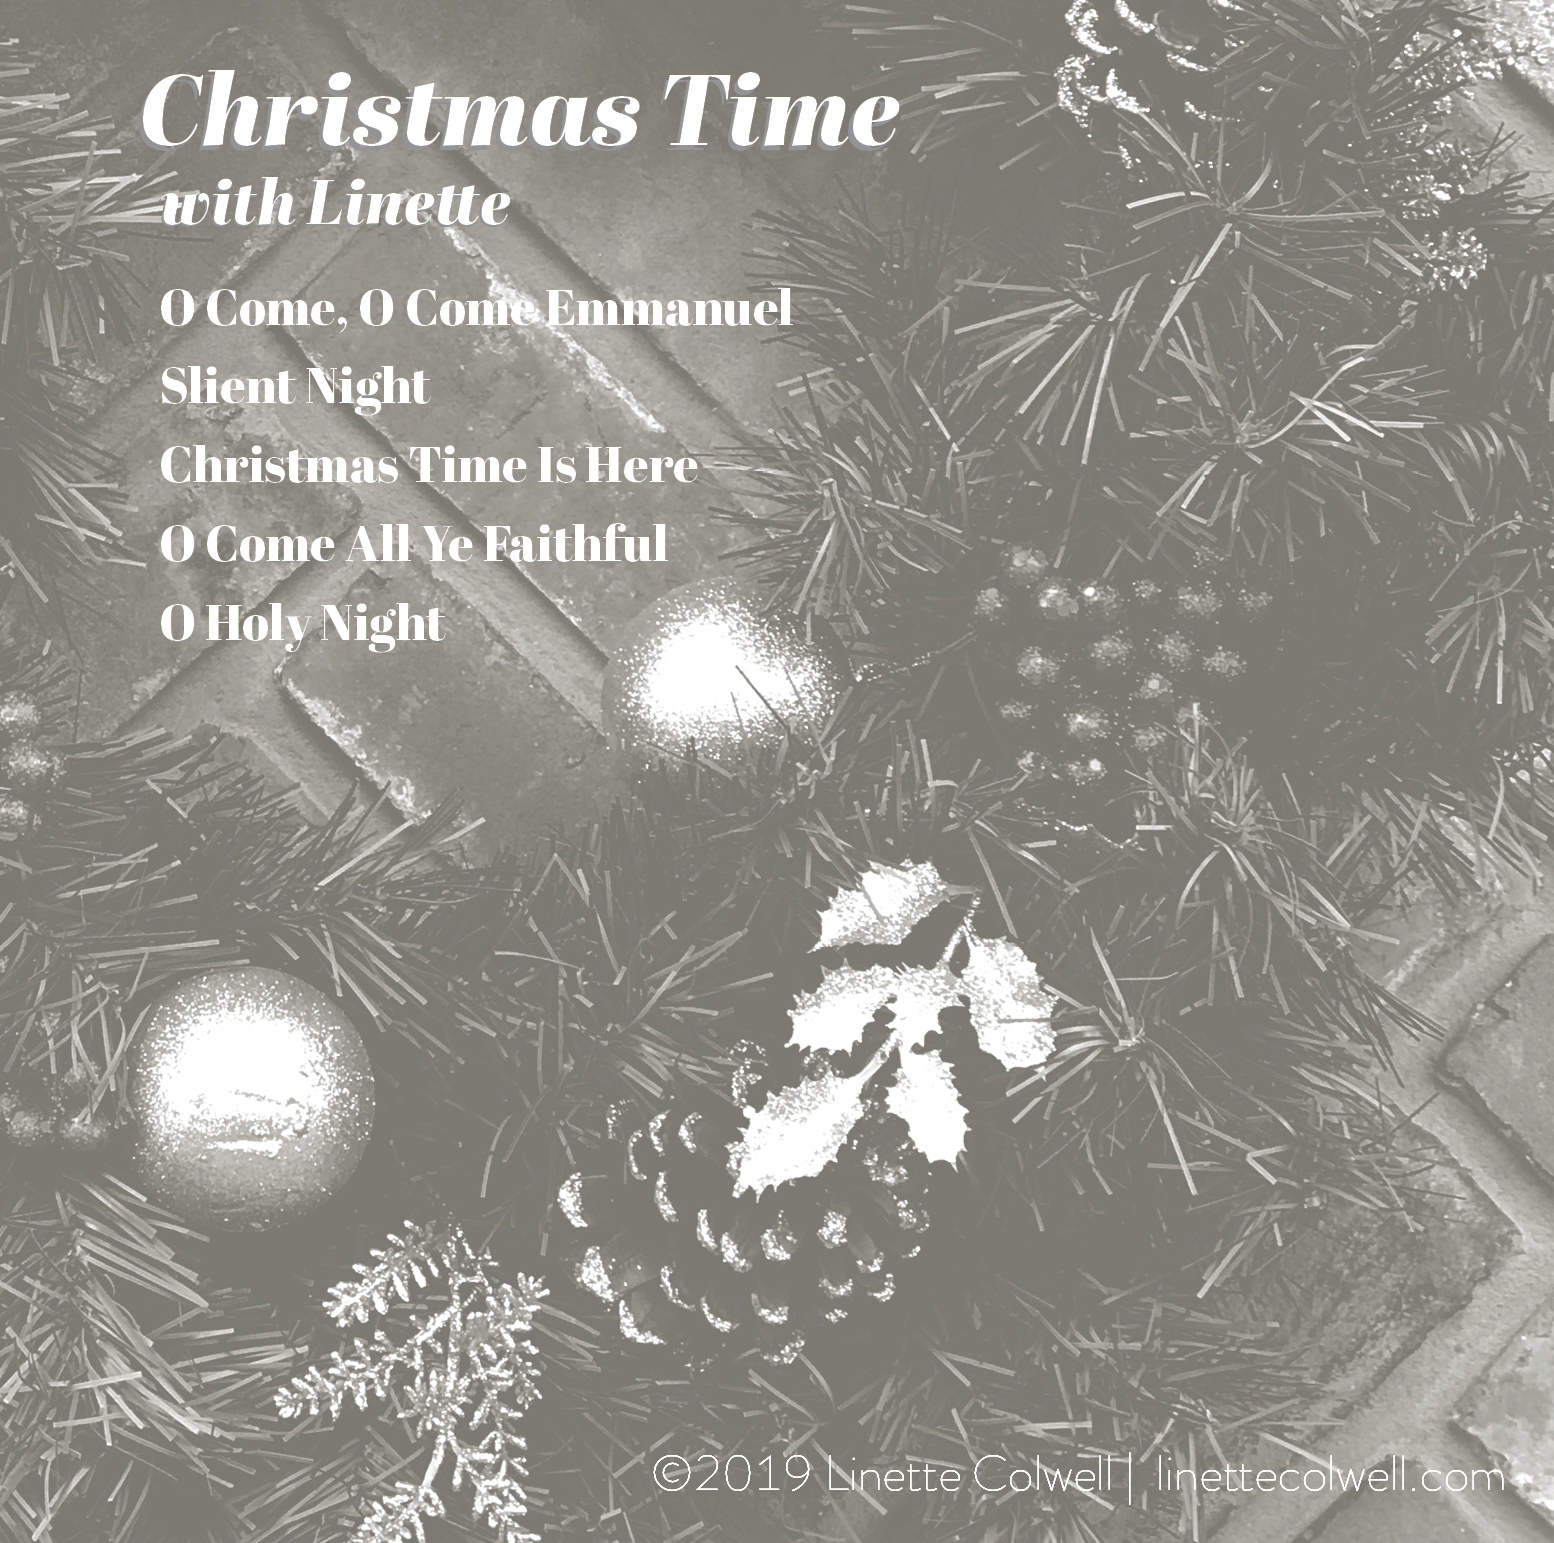 CD Cover for Linette Colwell Christmas EP - Back